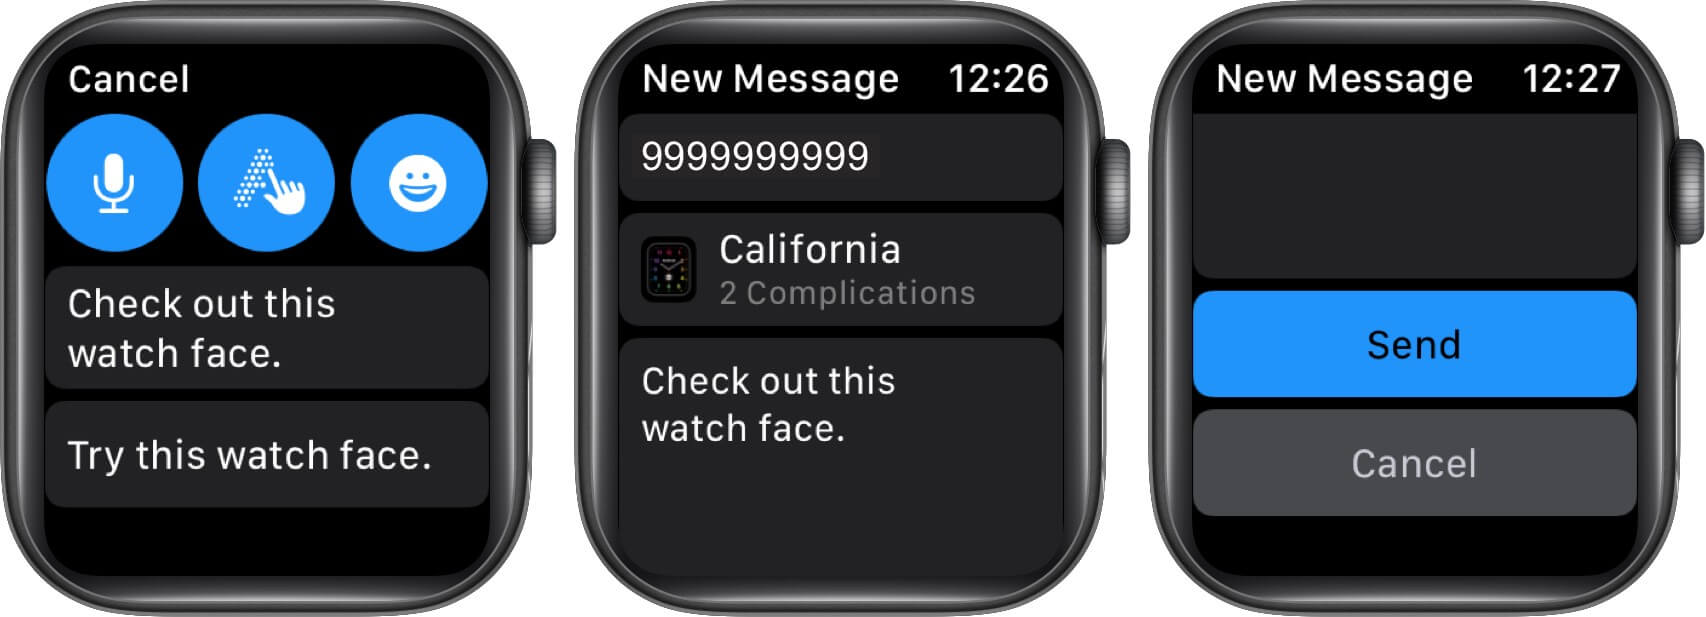 write message and tap on send to share watch face using apple watch